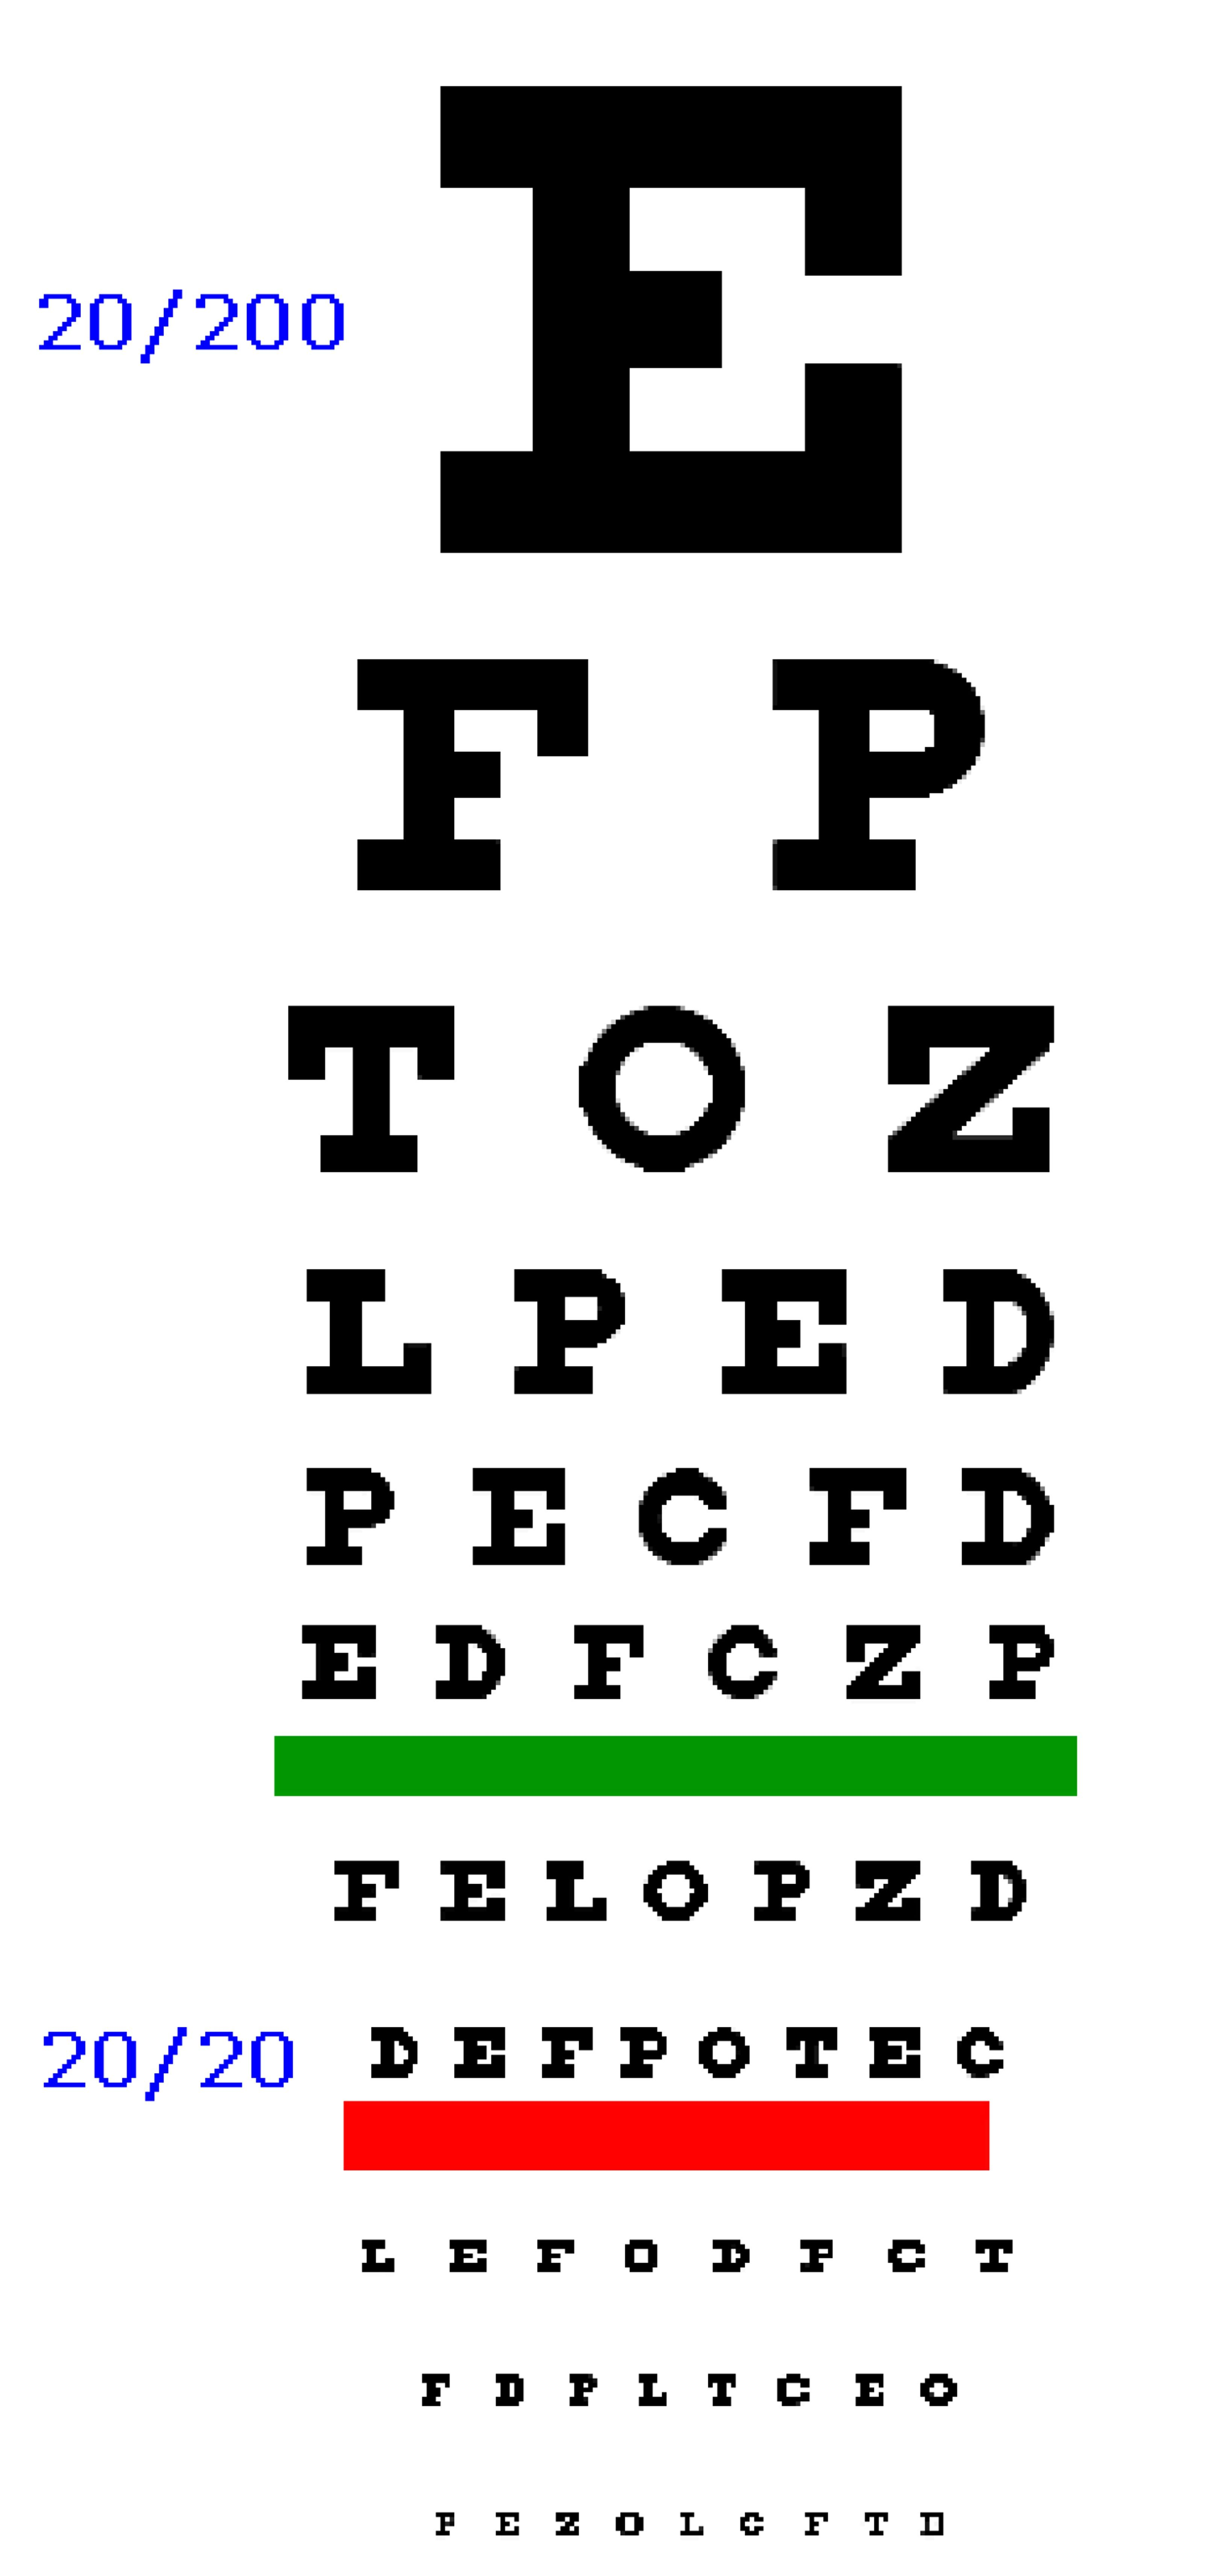 It's just an image of Ambitious Printable Vision Chart